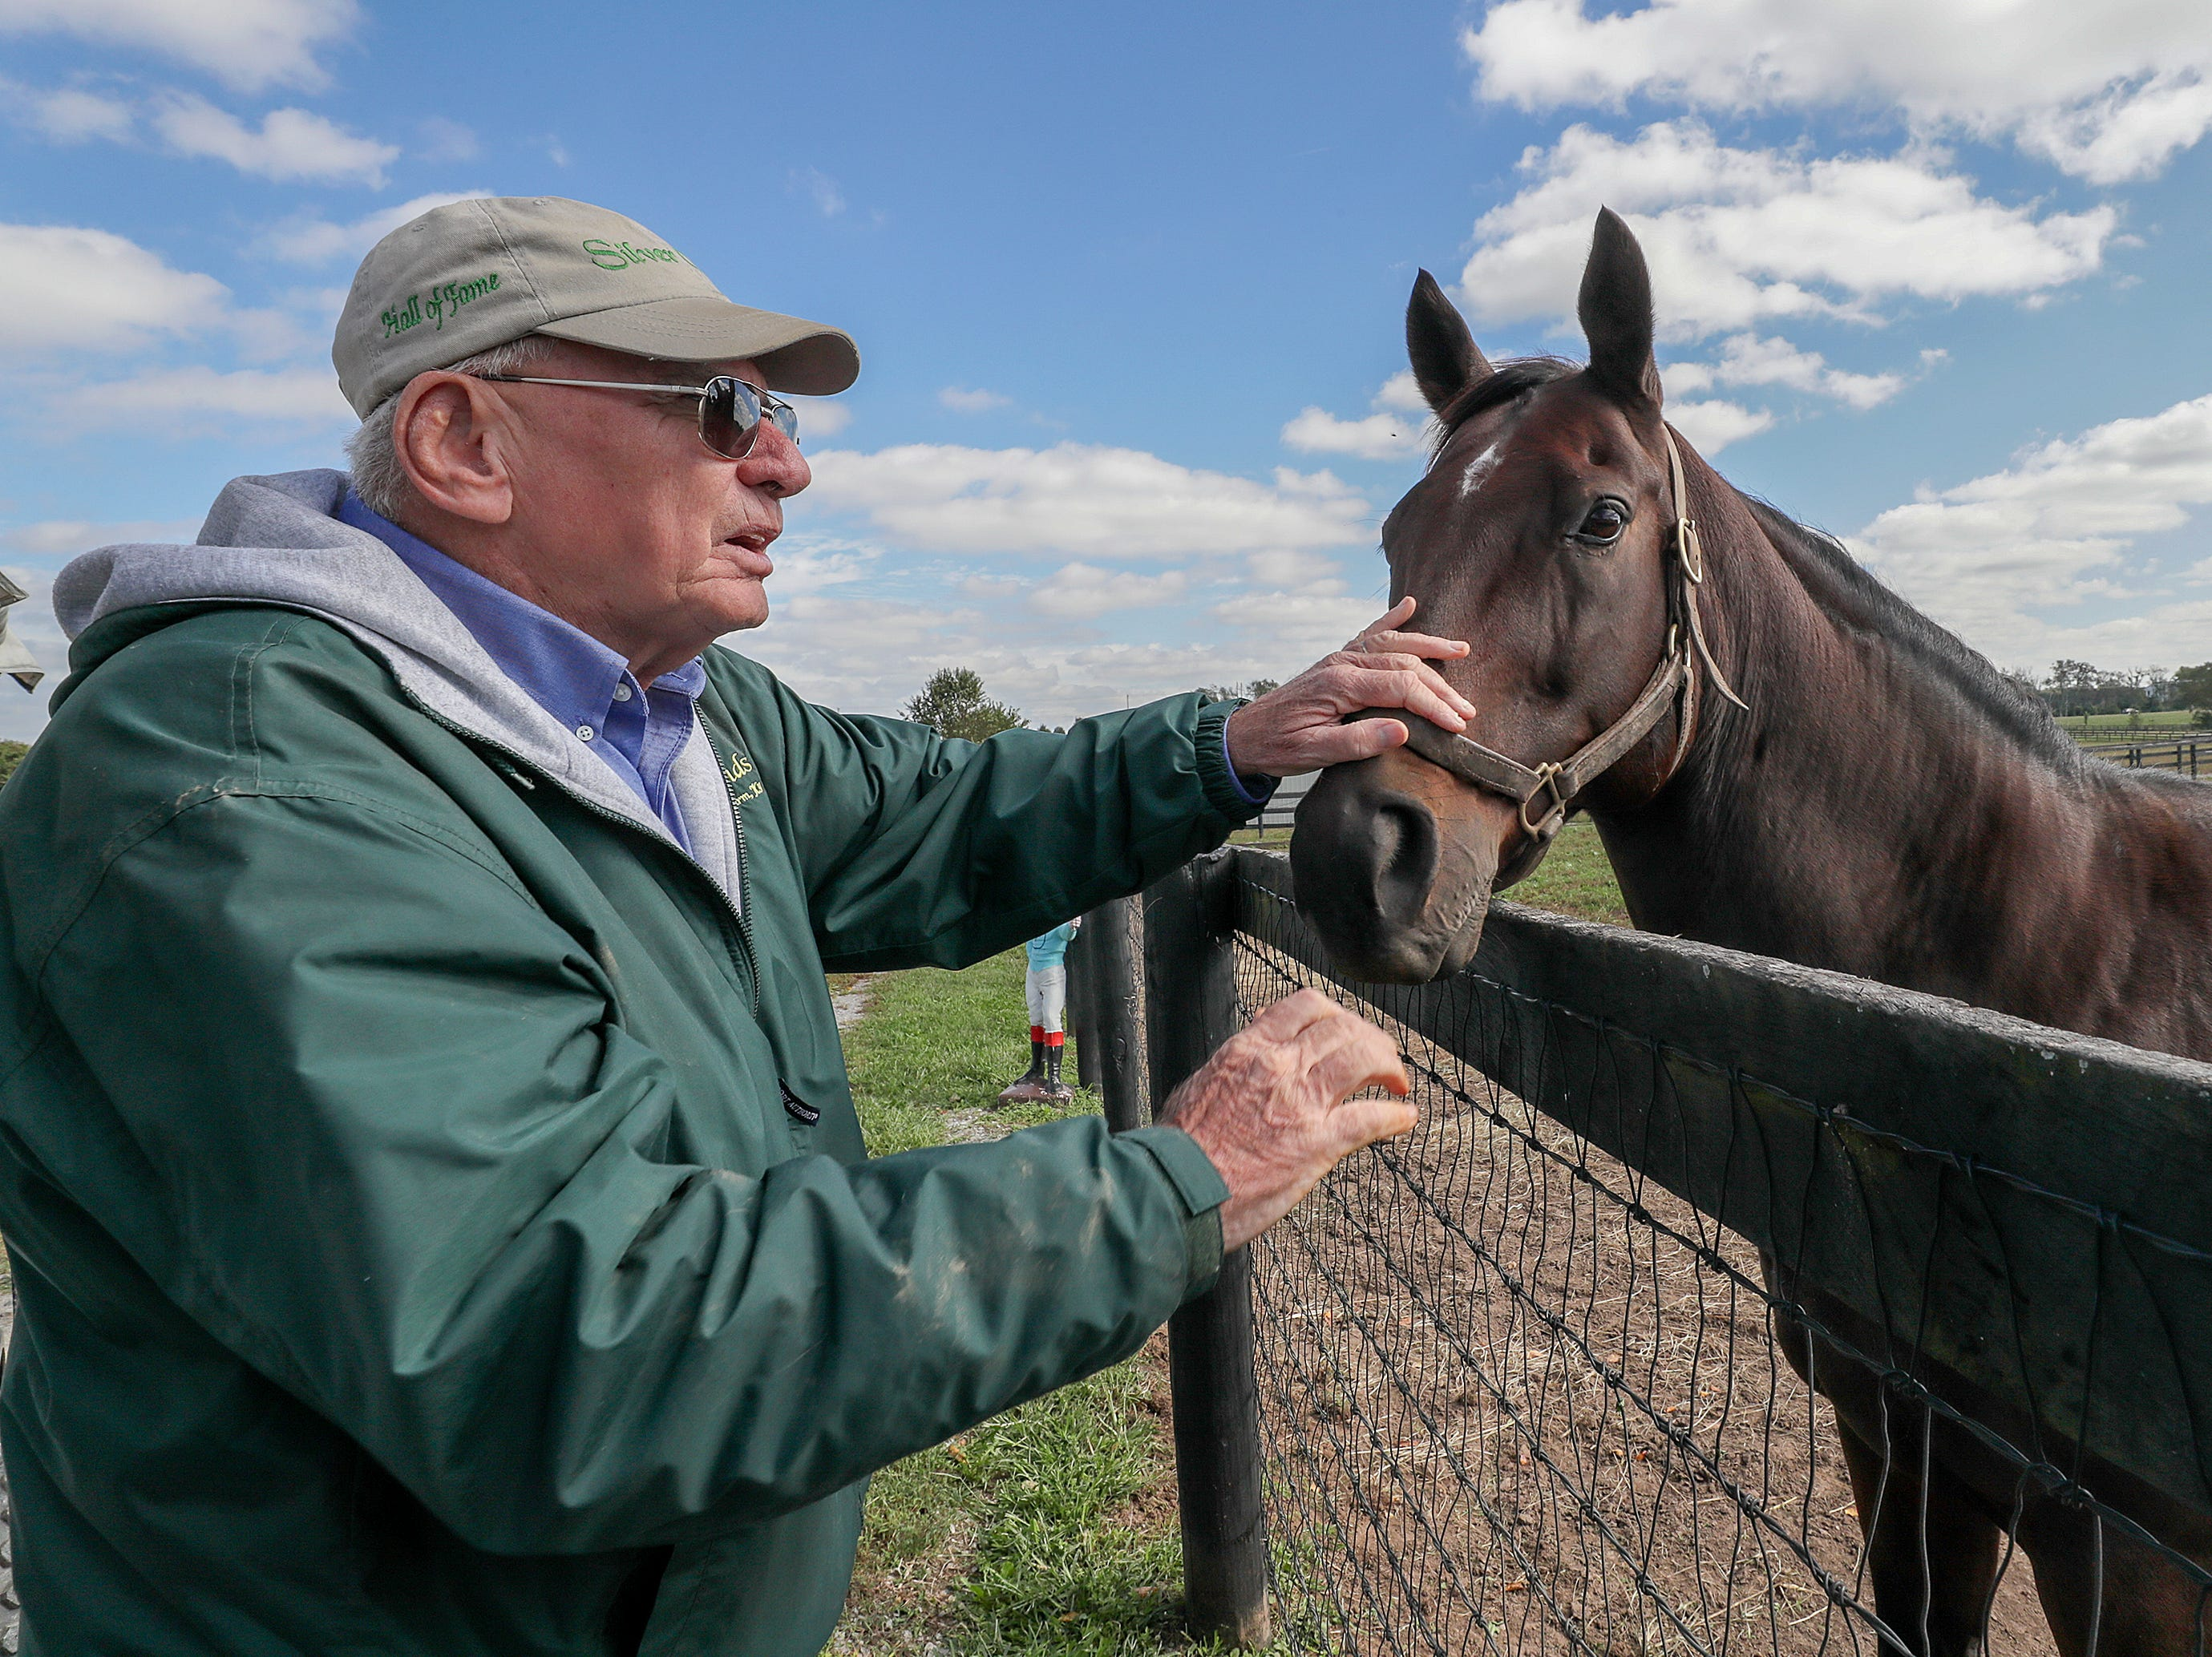 Old Friends Farm founder Michael Blowen with Eldafer, the Breeders Cup Marathon winner from 2010.October 11, 2018